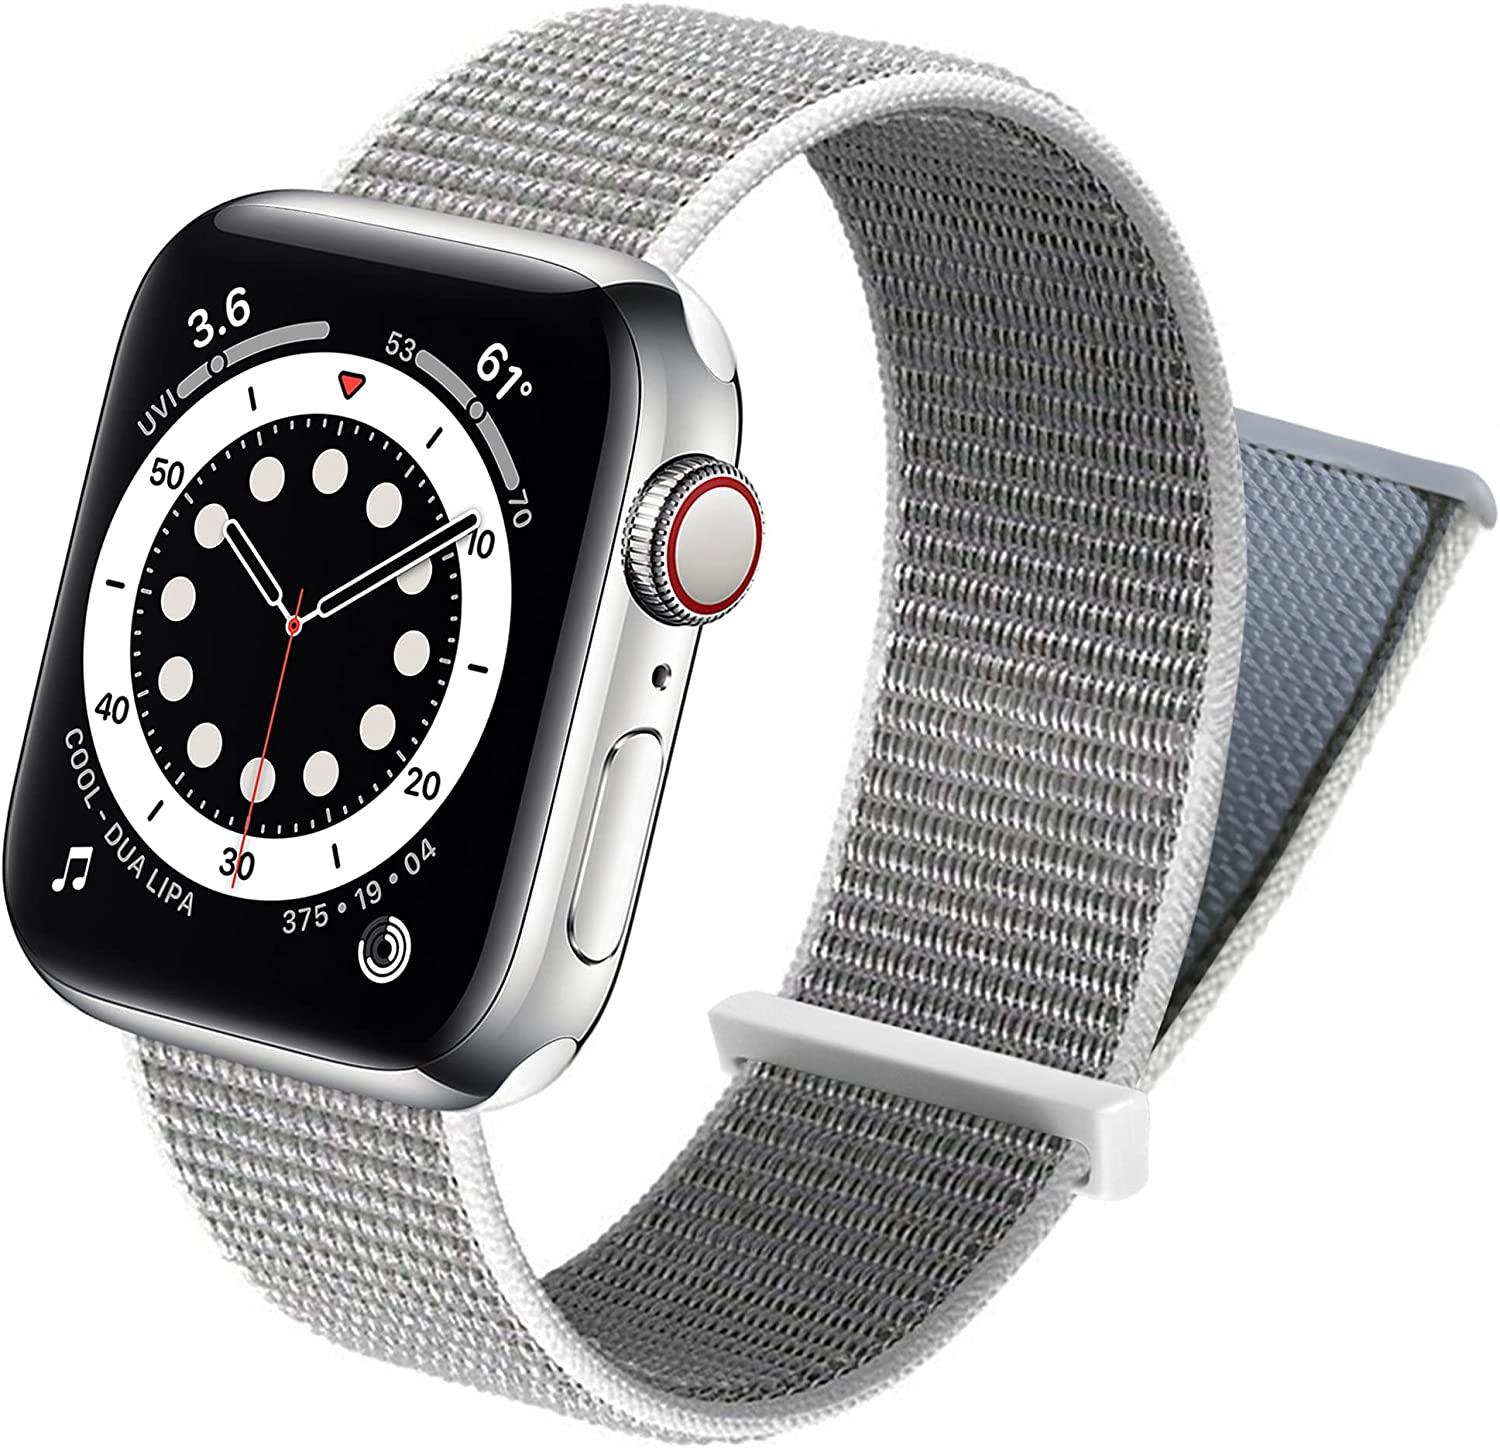 ecband Adjustable Nylon Sport Loop Compatible with Apple Watch Band 38mm 40mm 42mm 44mm, Women Men Braided Weave Strap Band for iWatch Series 6 5 4 3 2 1 SE